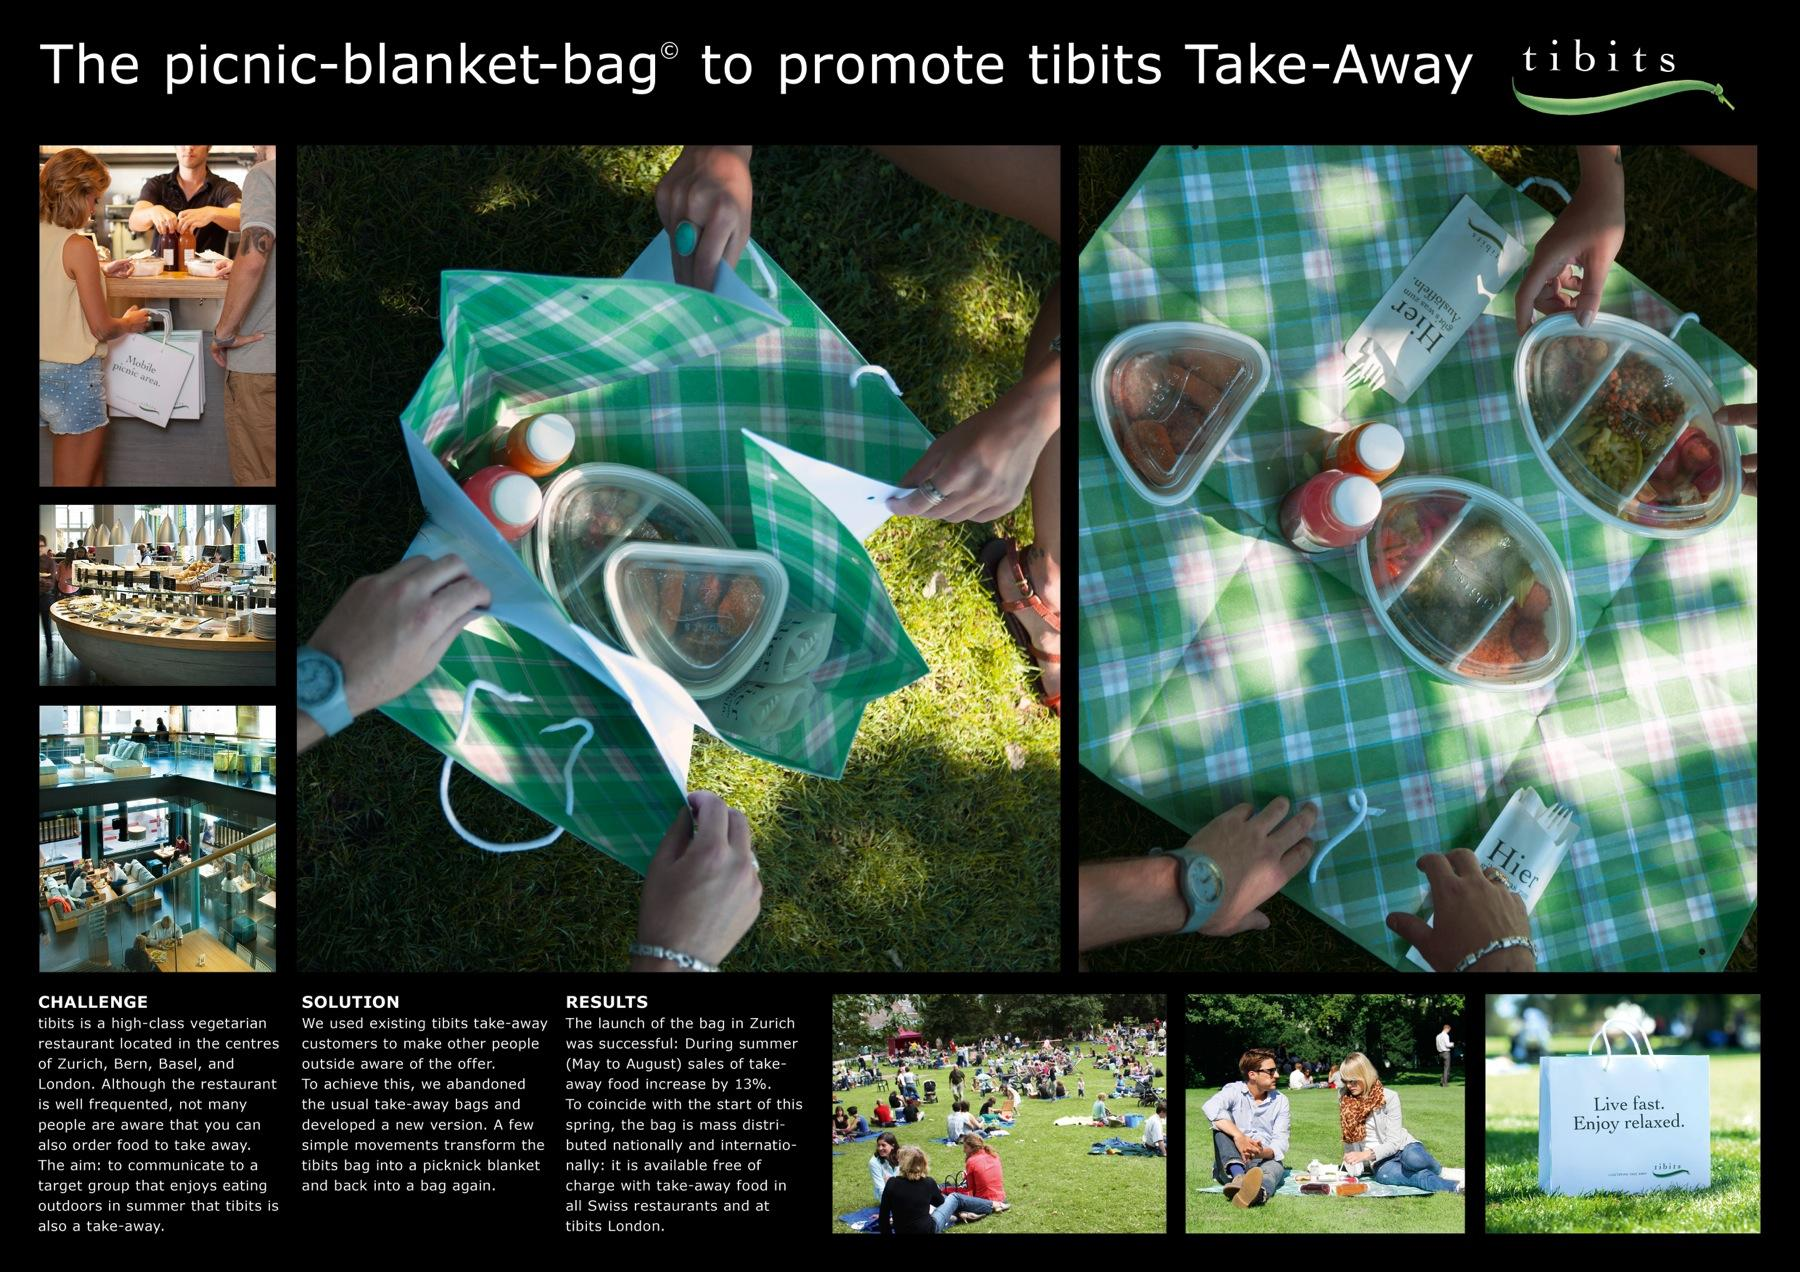 Tibits Vegetarian Restaurant Direct Ad -  Picnic blanket bag